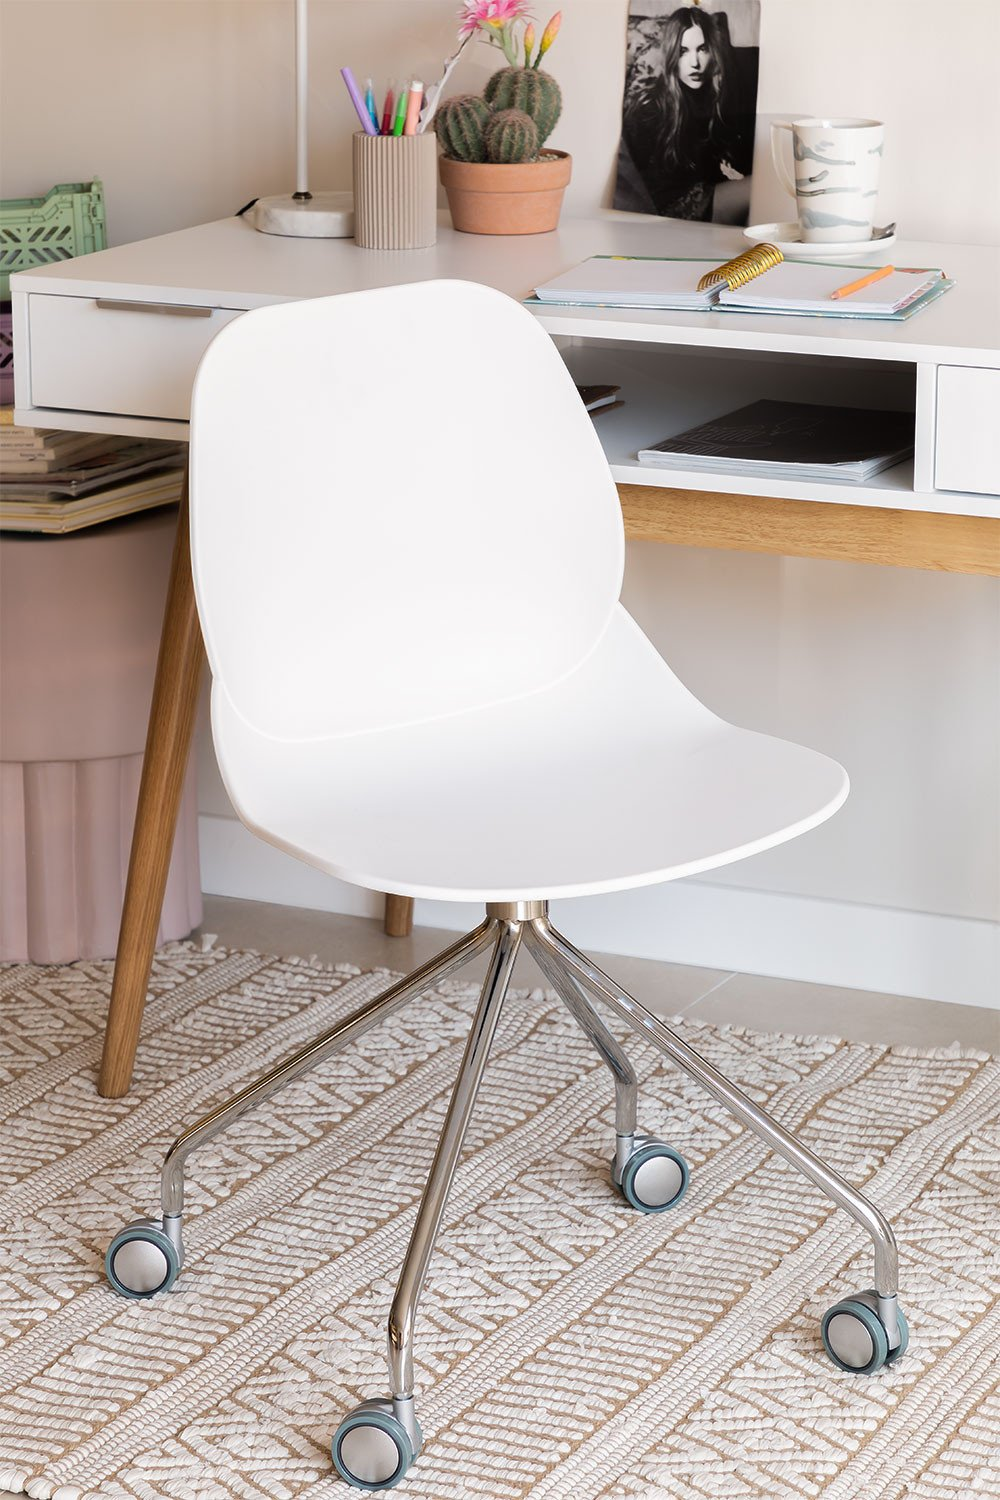 Tech Office Chair with Wheels, gallery image 1